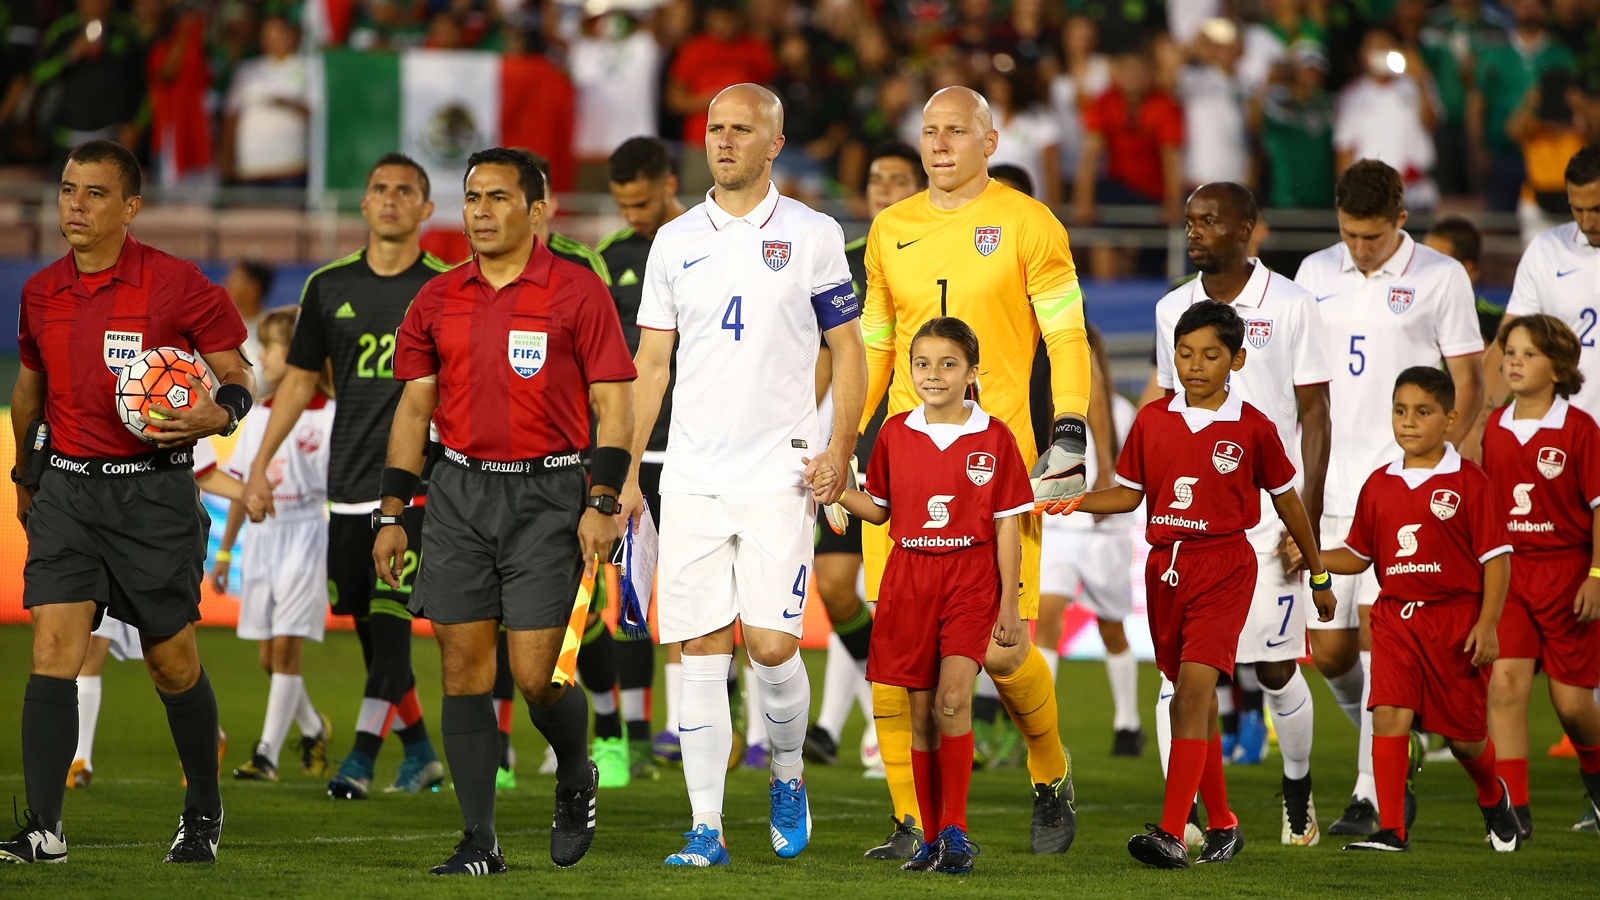 Captain Michael Bradley leads the USA out onto the field ahead of the Americans' CONCACAF Cup playoff vs. Mexico at the Rose Bowl.